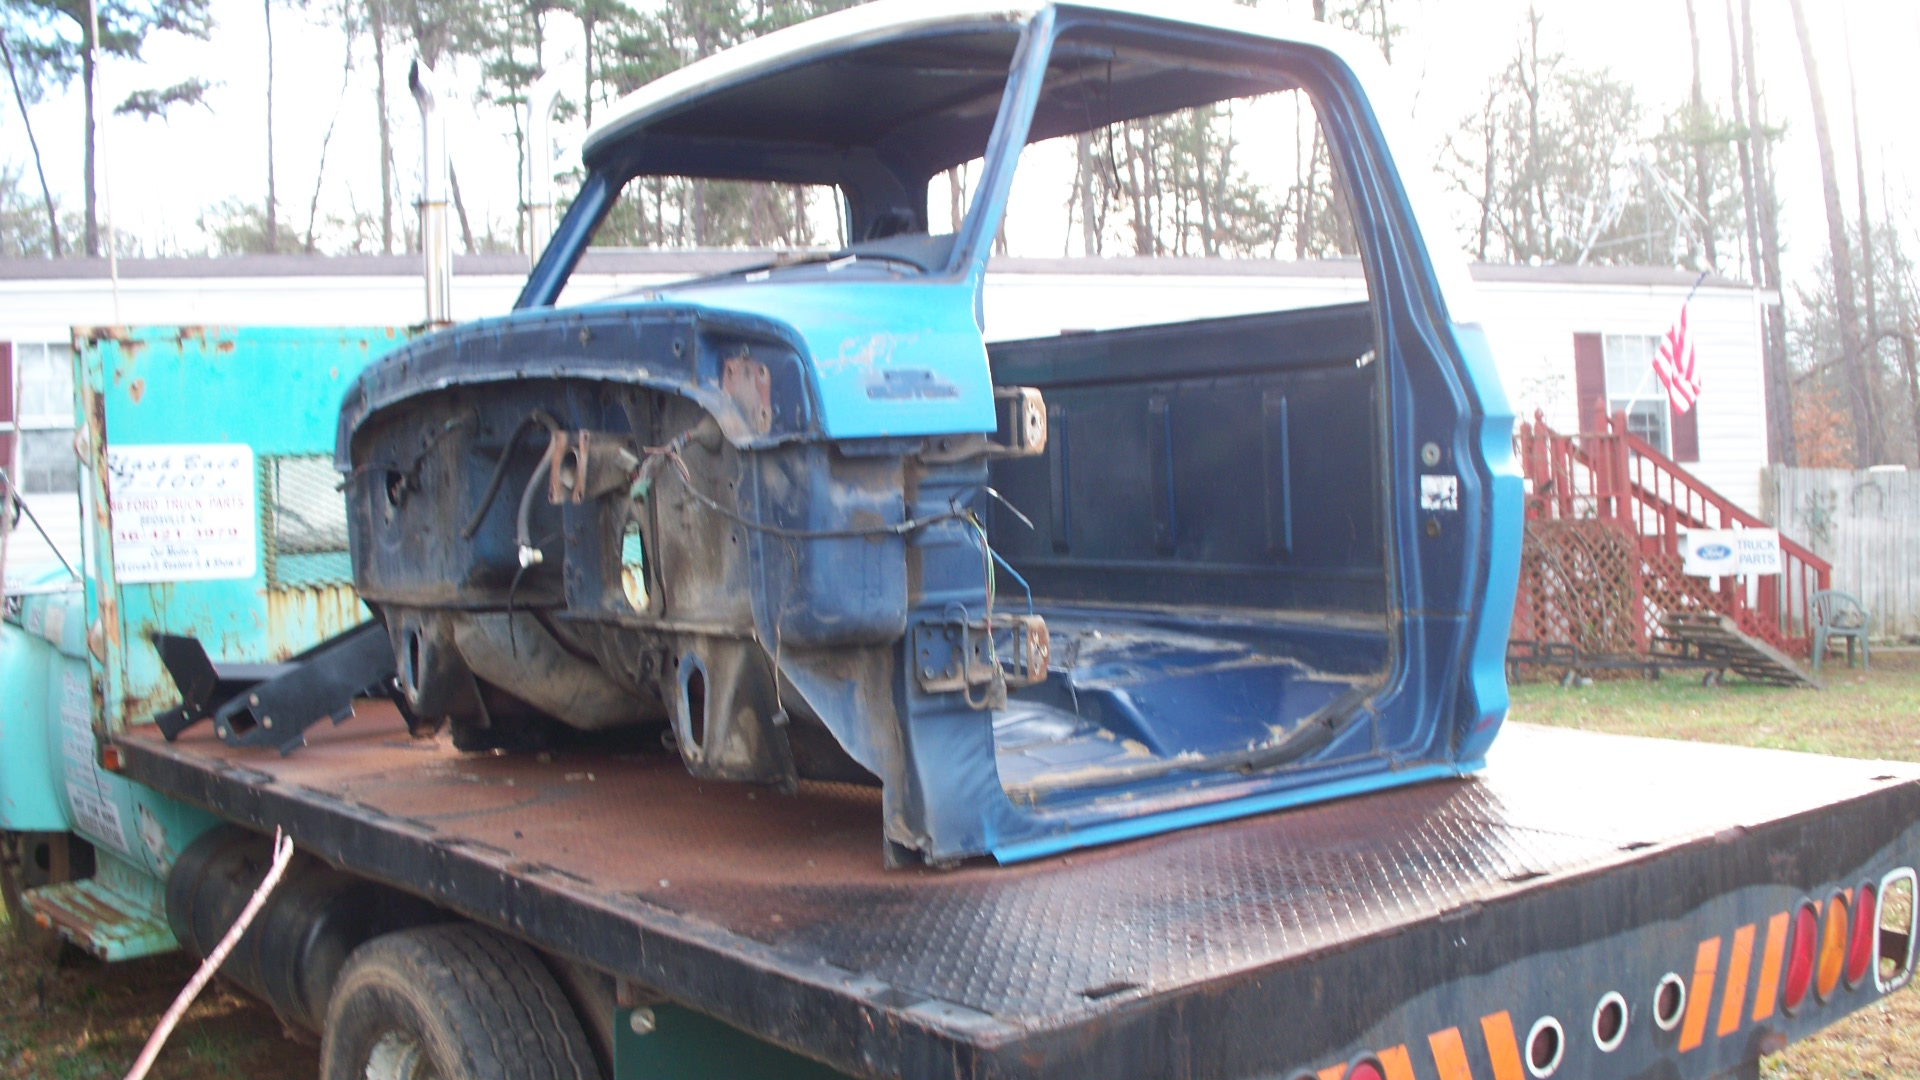 Flashback F100 39 S Salvage Yard Tourthis Page Is A Quick Tour Of Our Salvage Yardsince It S Getting More Muddy And Areas That Cannot Get To Anymore With The Fork Lift We Have